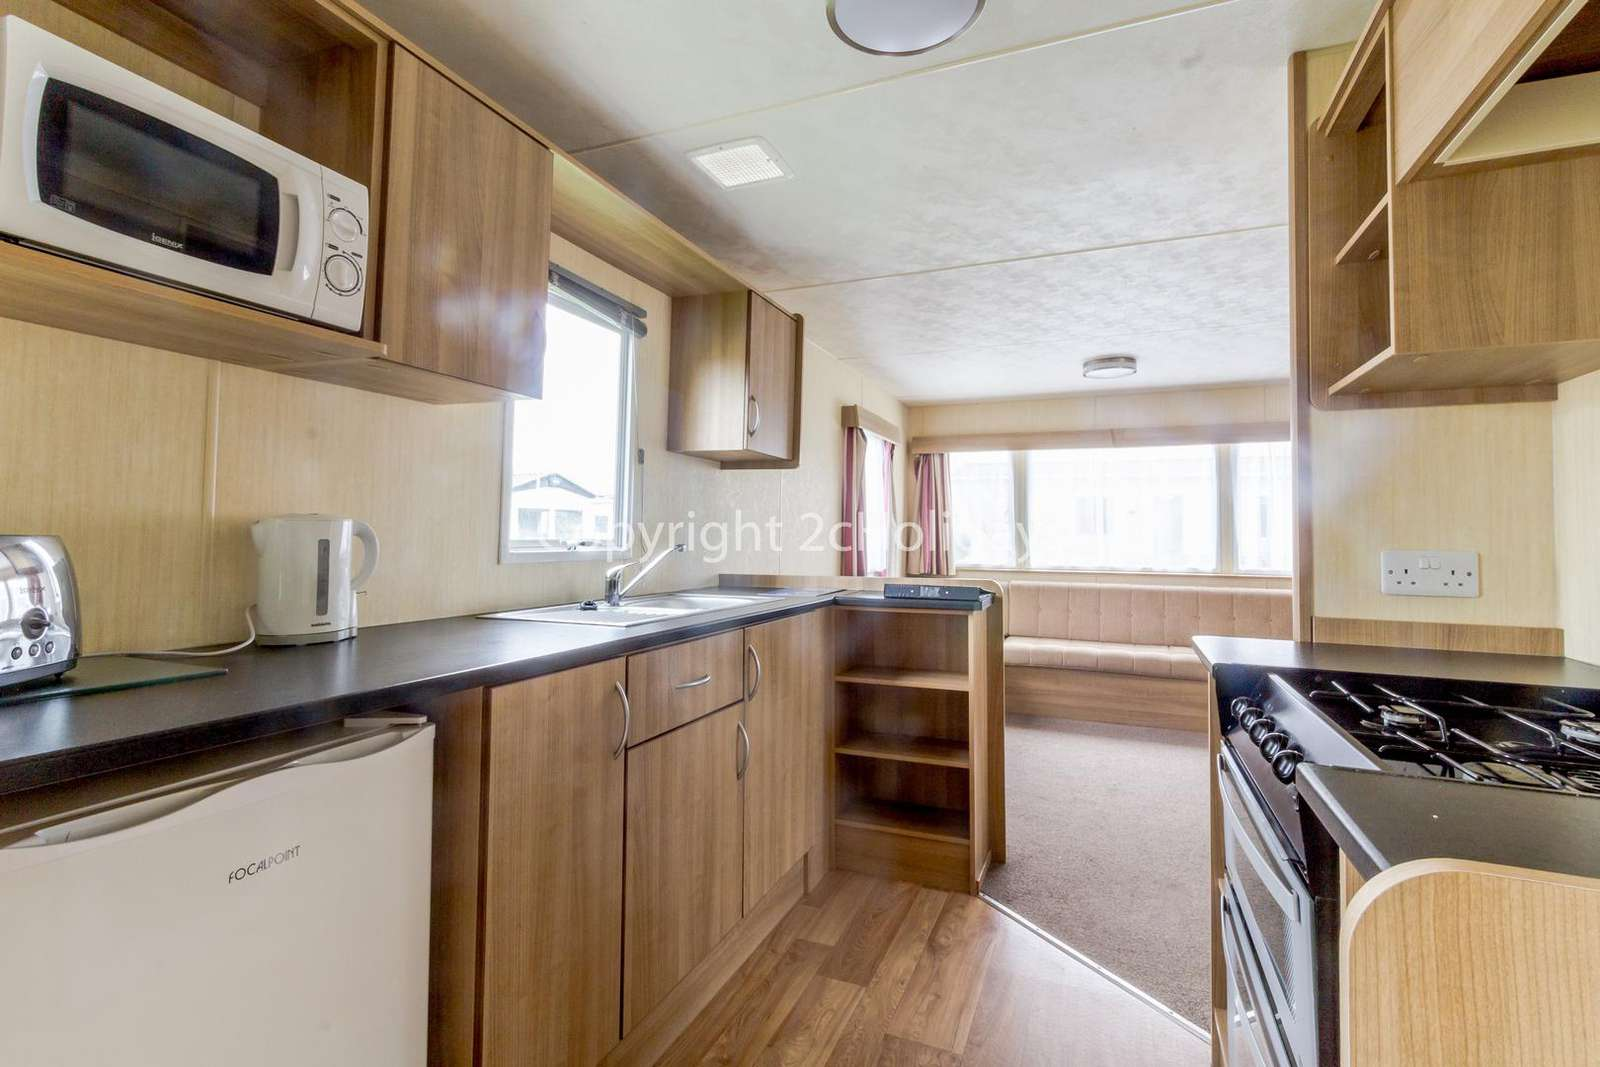 Why not visit Hopton Holiday Village and make memories with the family?